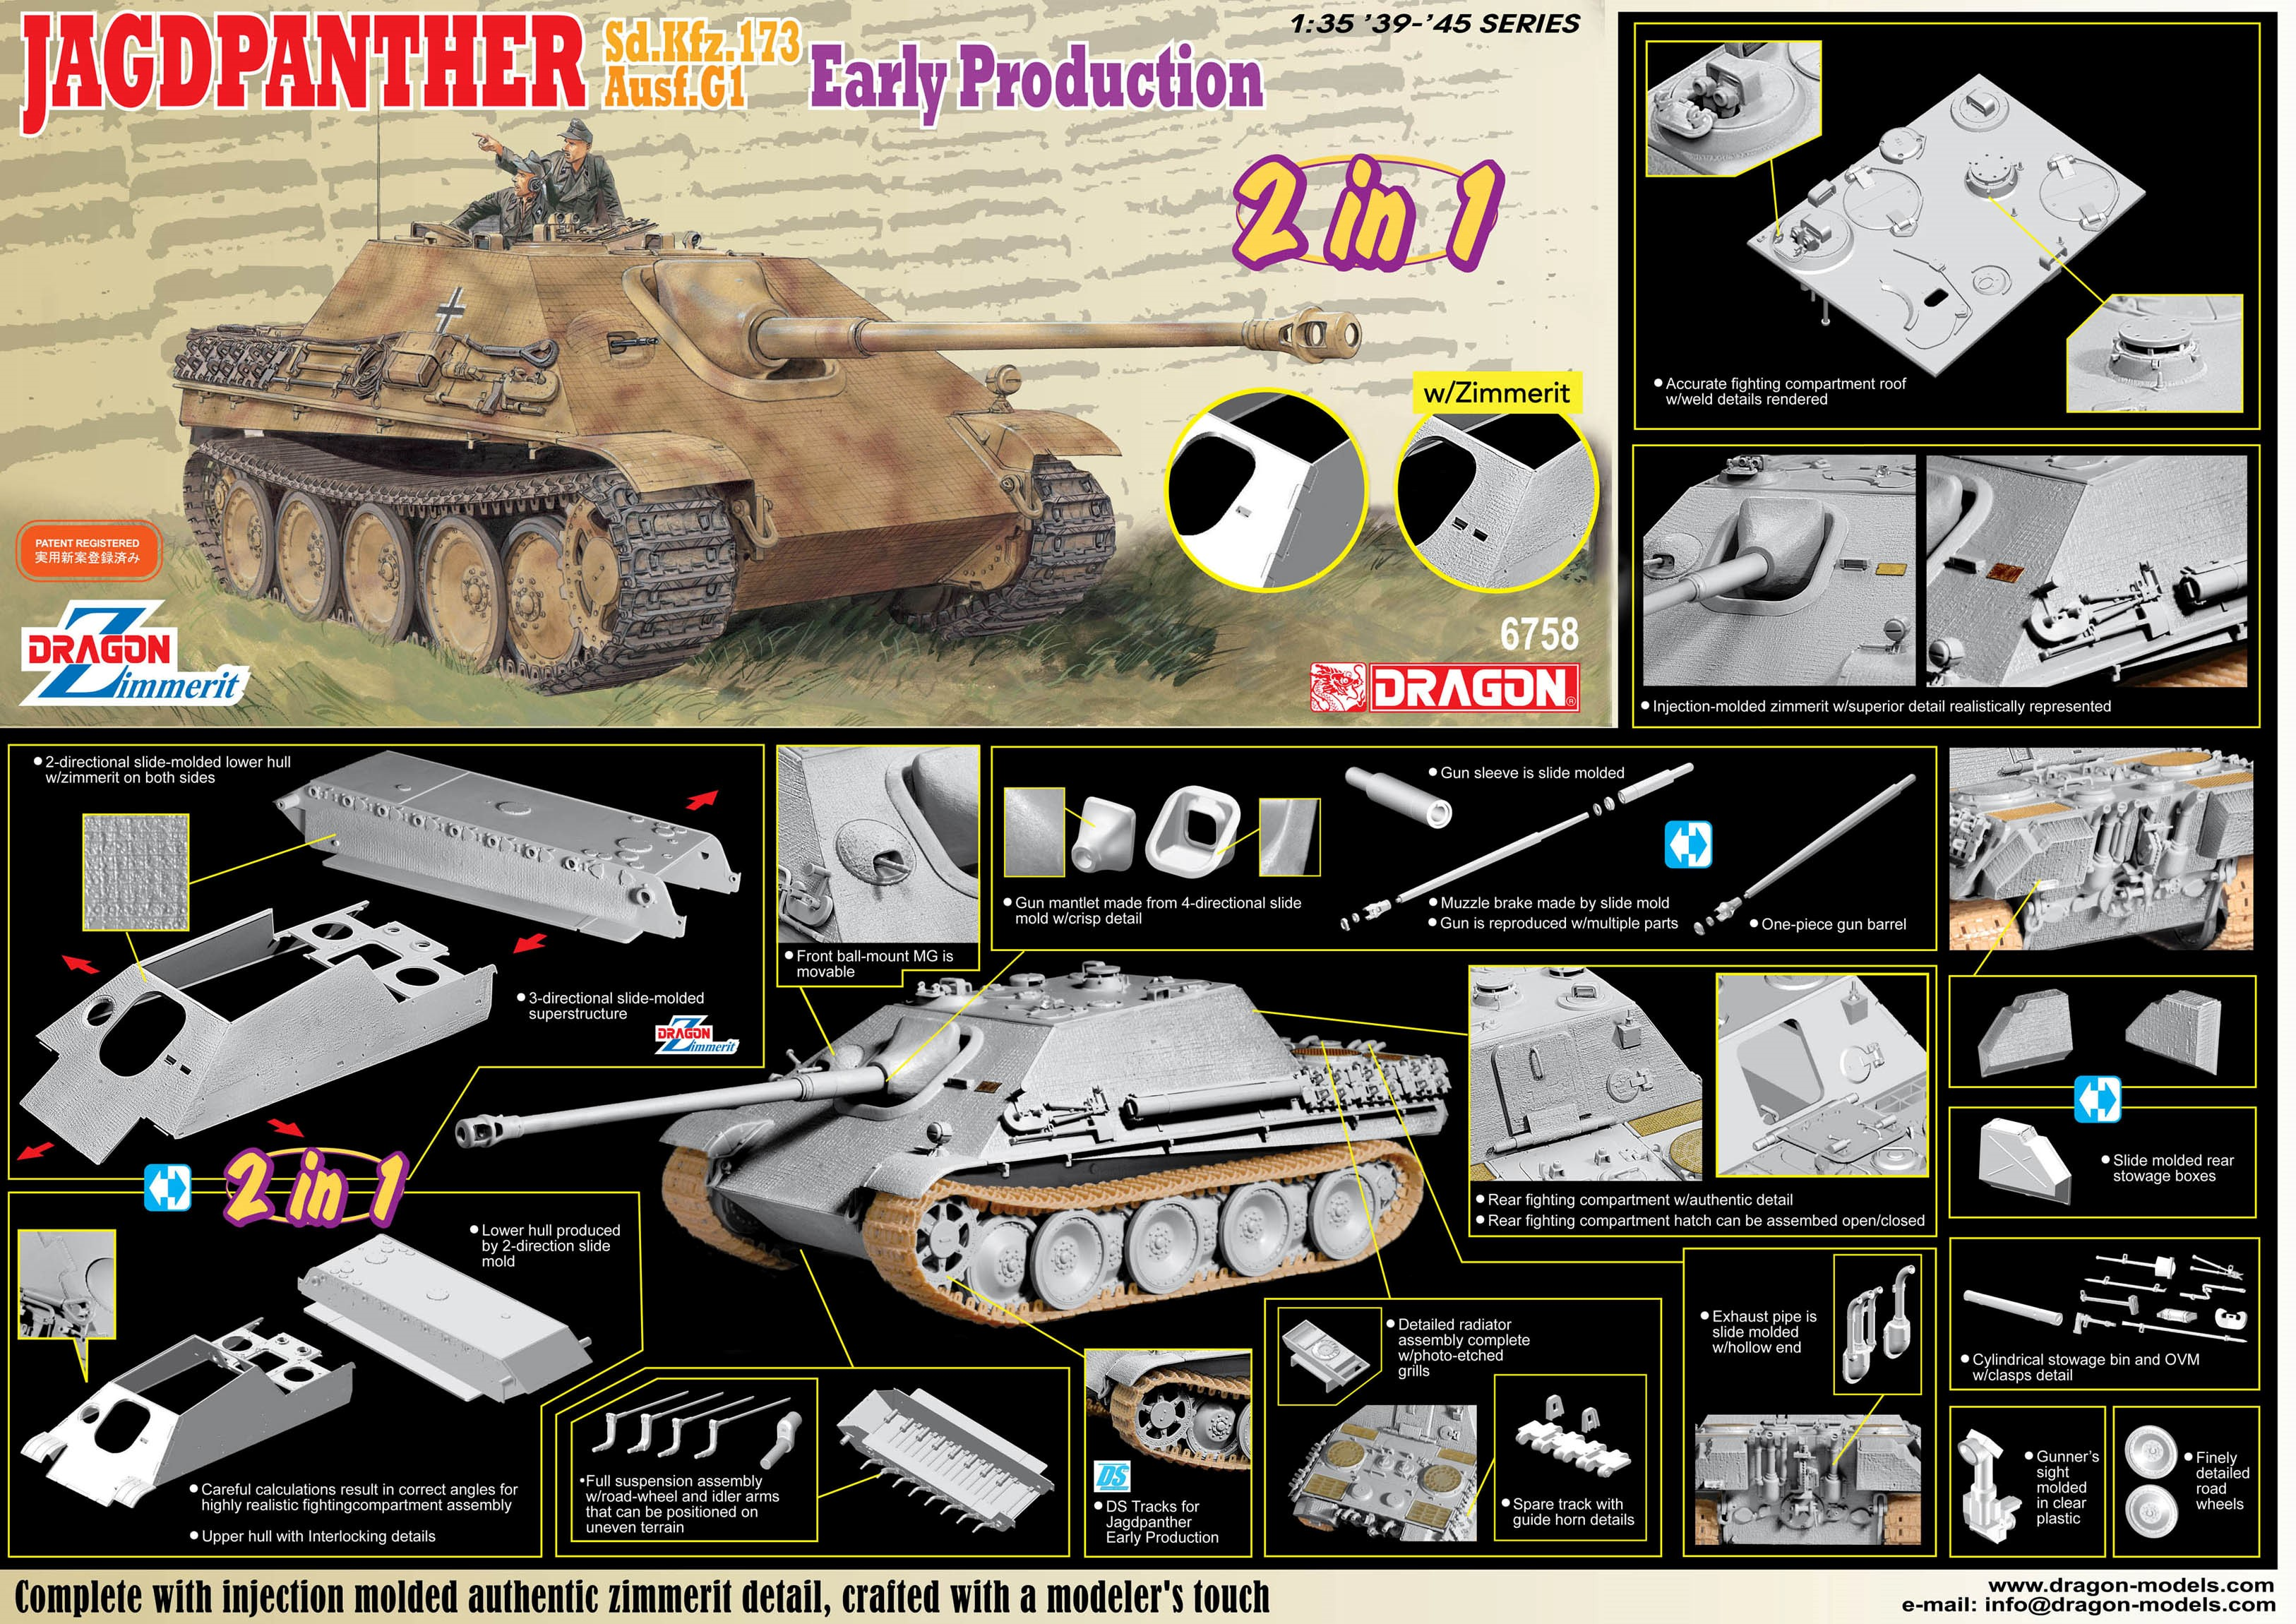 1/35 Sd.Kfz.173 Jagdpanther Ausf.G1 Early with Zimmerit